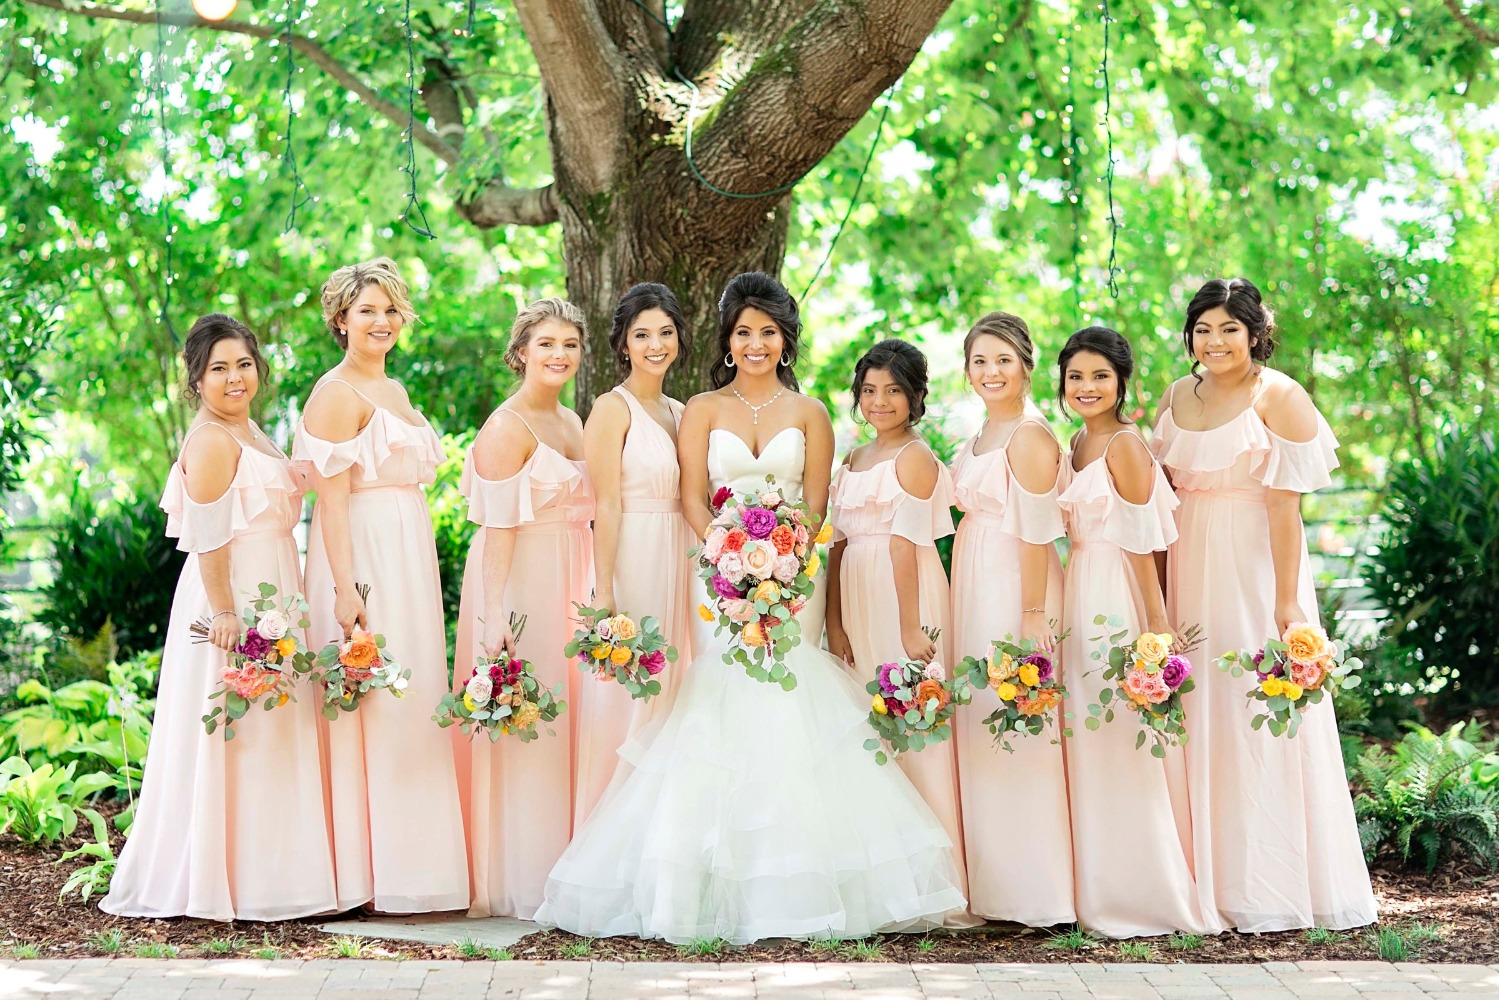 A Blush And Pink Love At First Sight Type Of Wedding